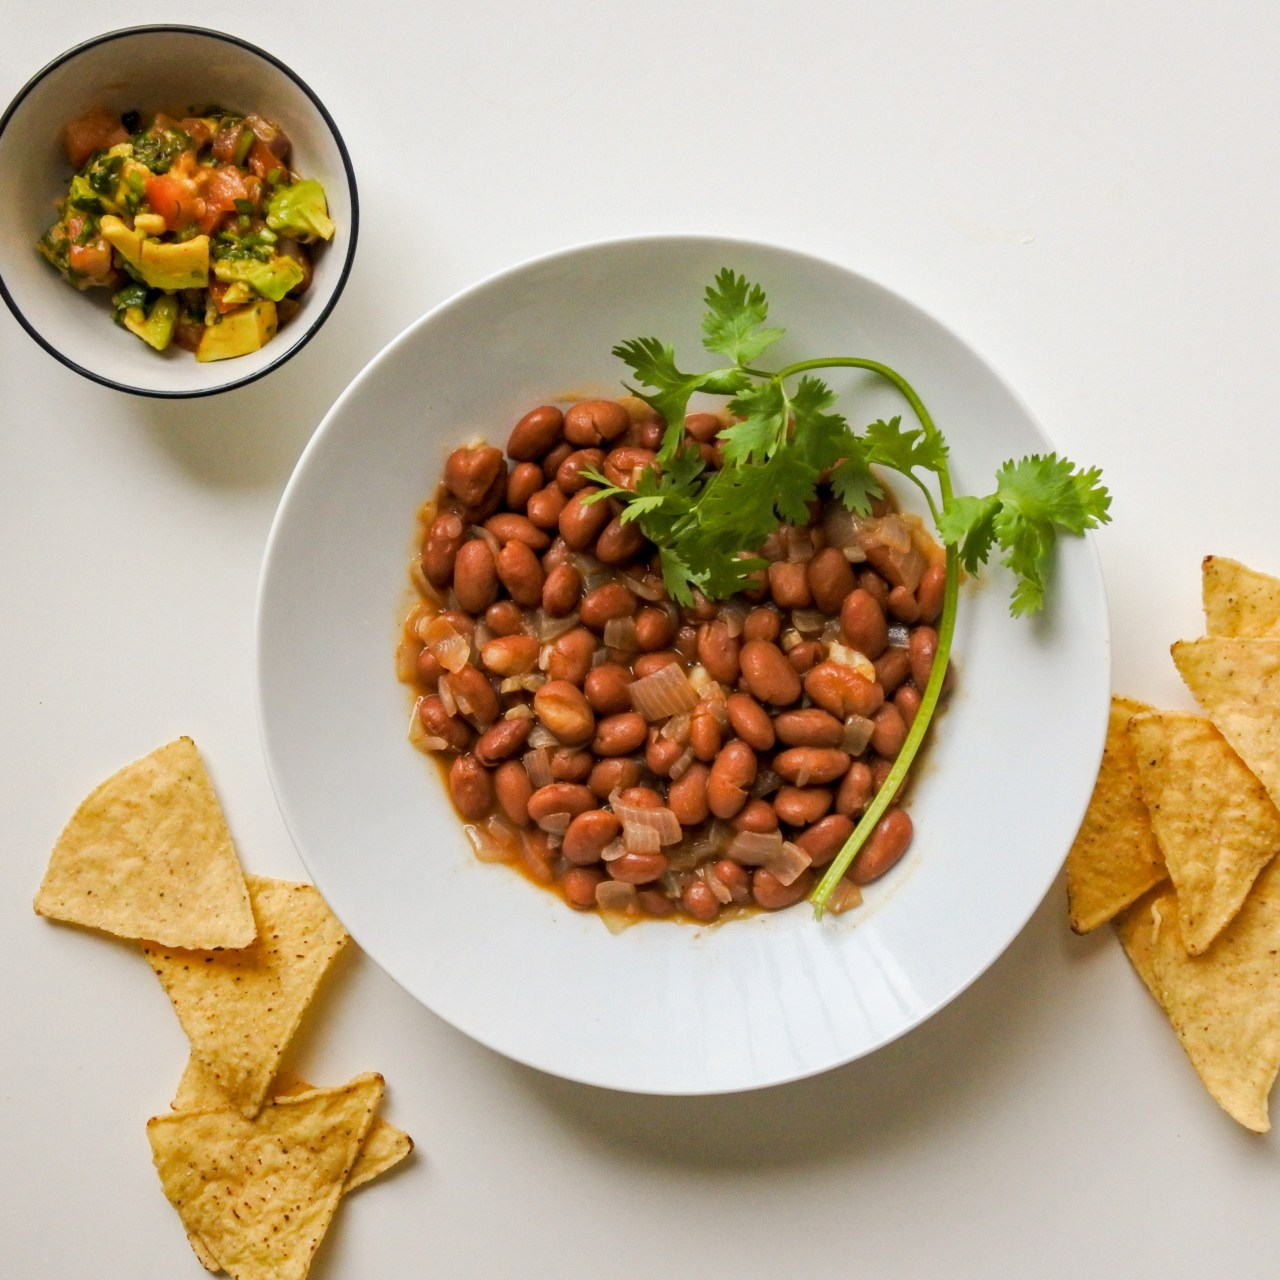 A bowl of brown taco beans garnished with a sprig of cilantro served alongside scattered tortilla chips and a pico de gallo